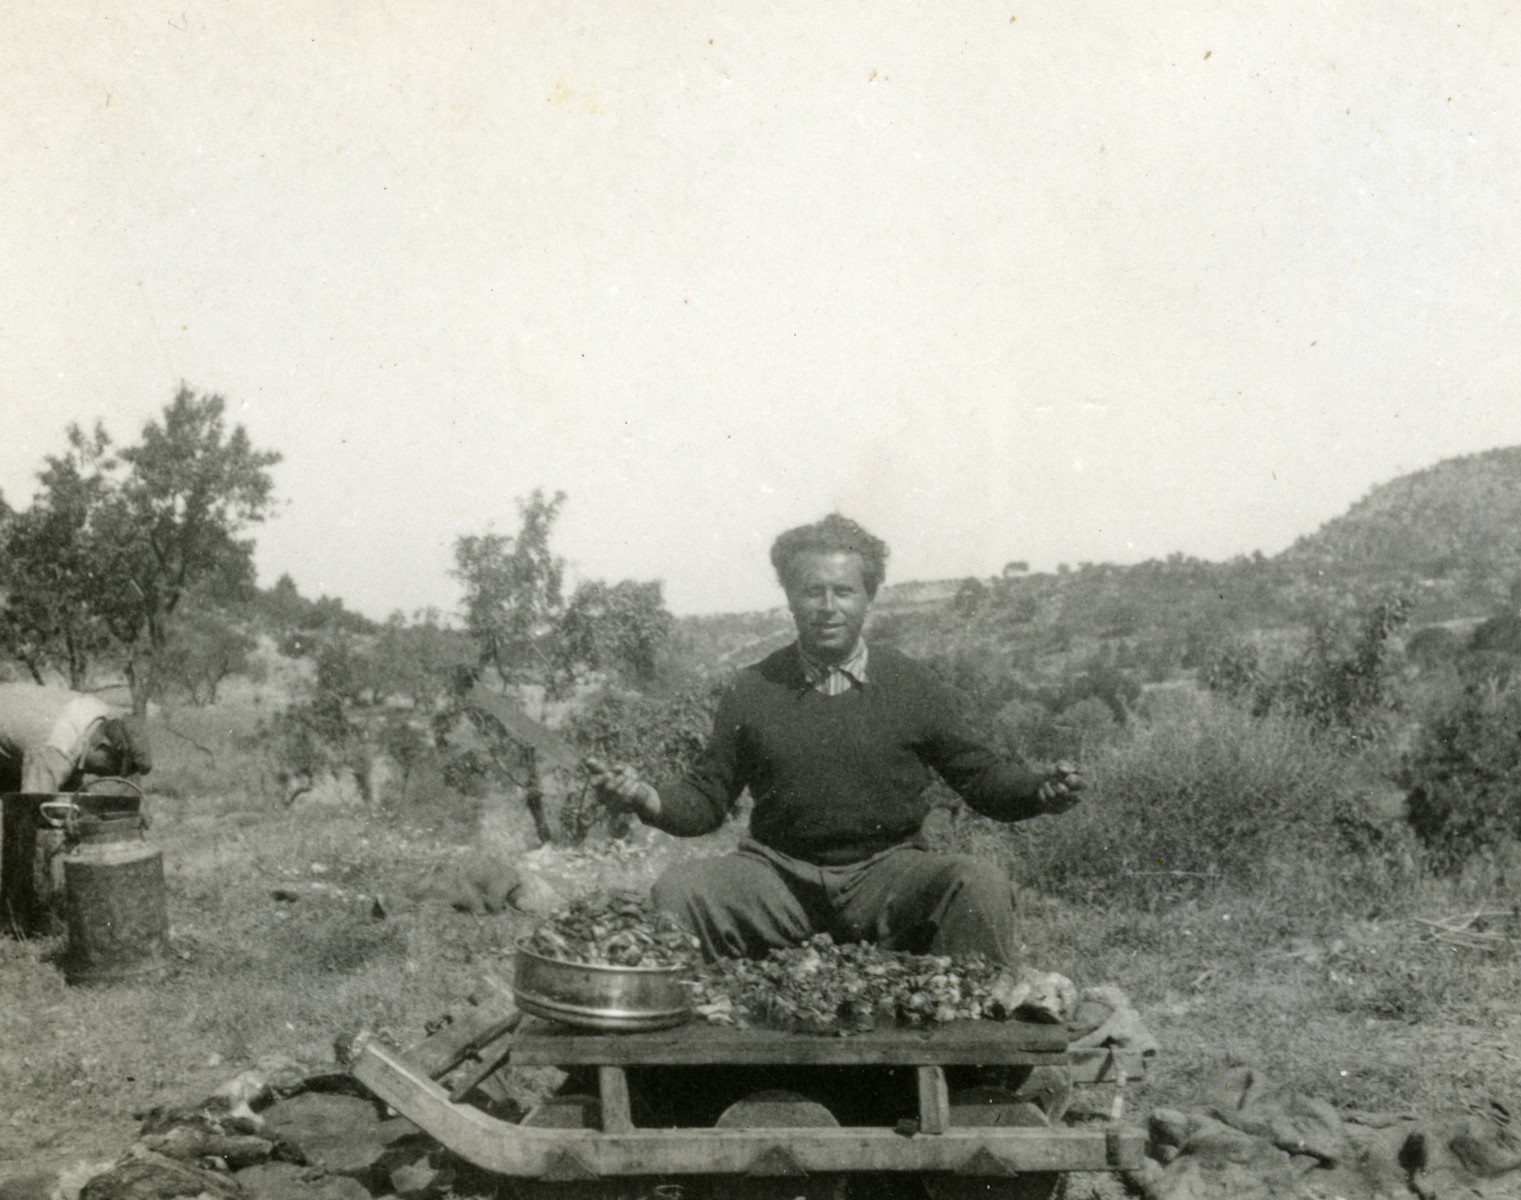 Victor Tulman cooks in a makeshift outdoor kitchen during the Spanish Civil War.